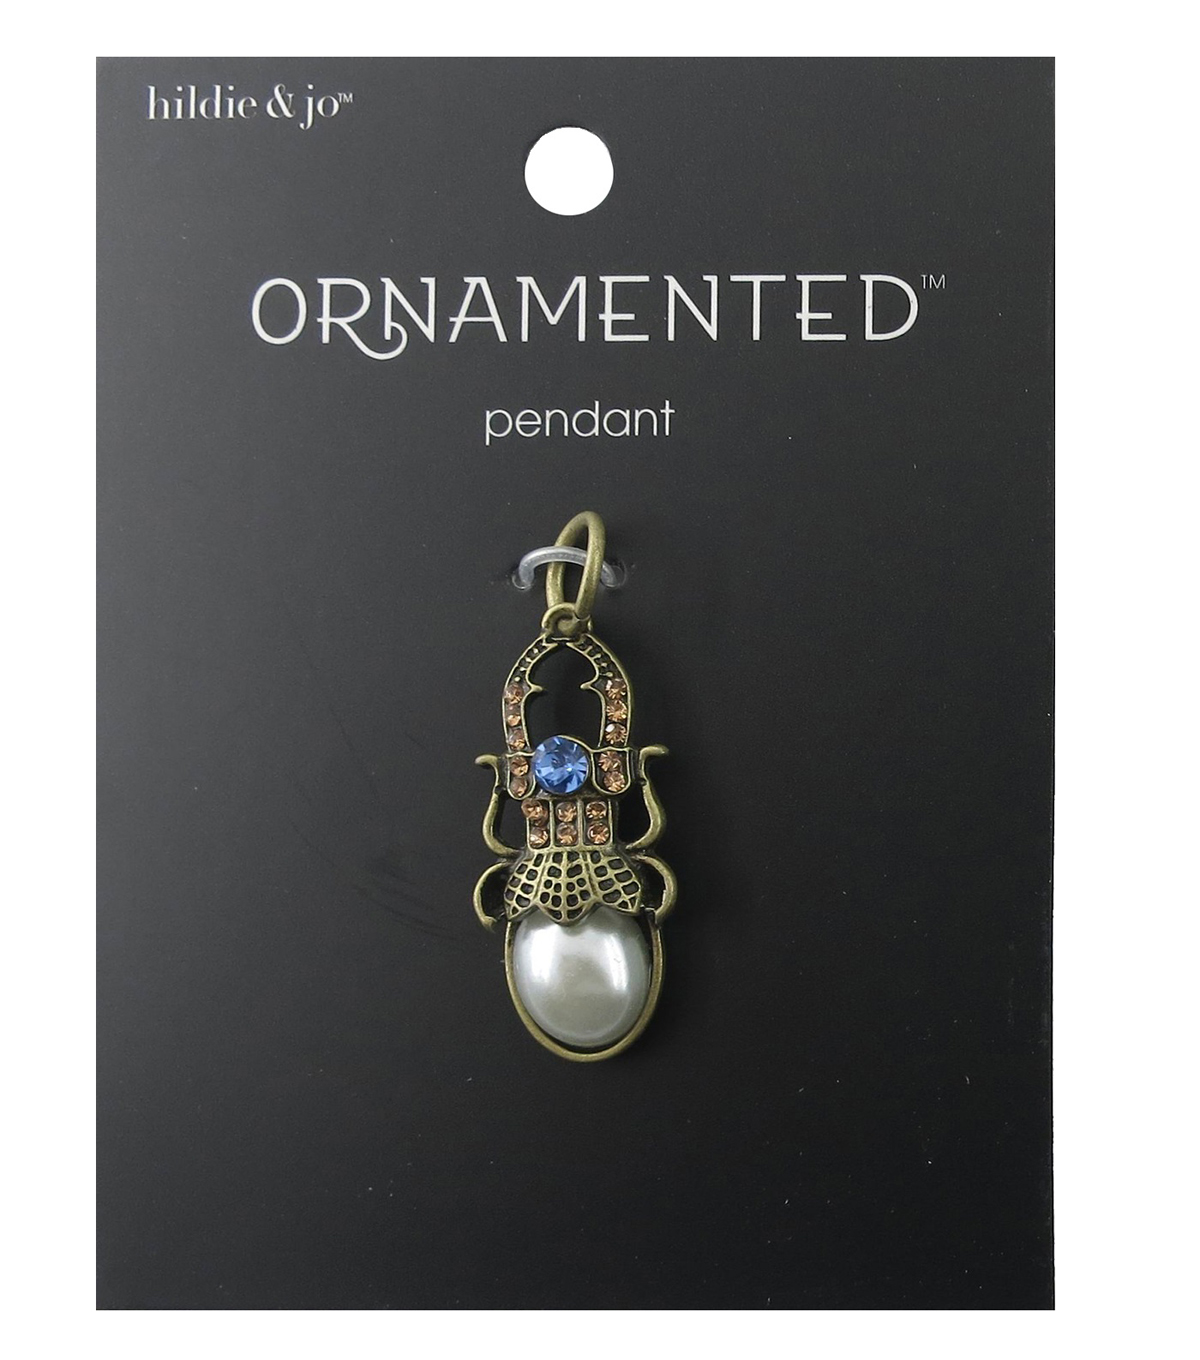 hildie & jo™ Ornamented Bug Antique Gold Pendant-Pearl & Crystals